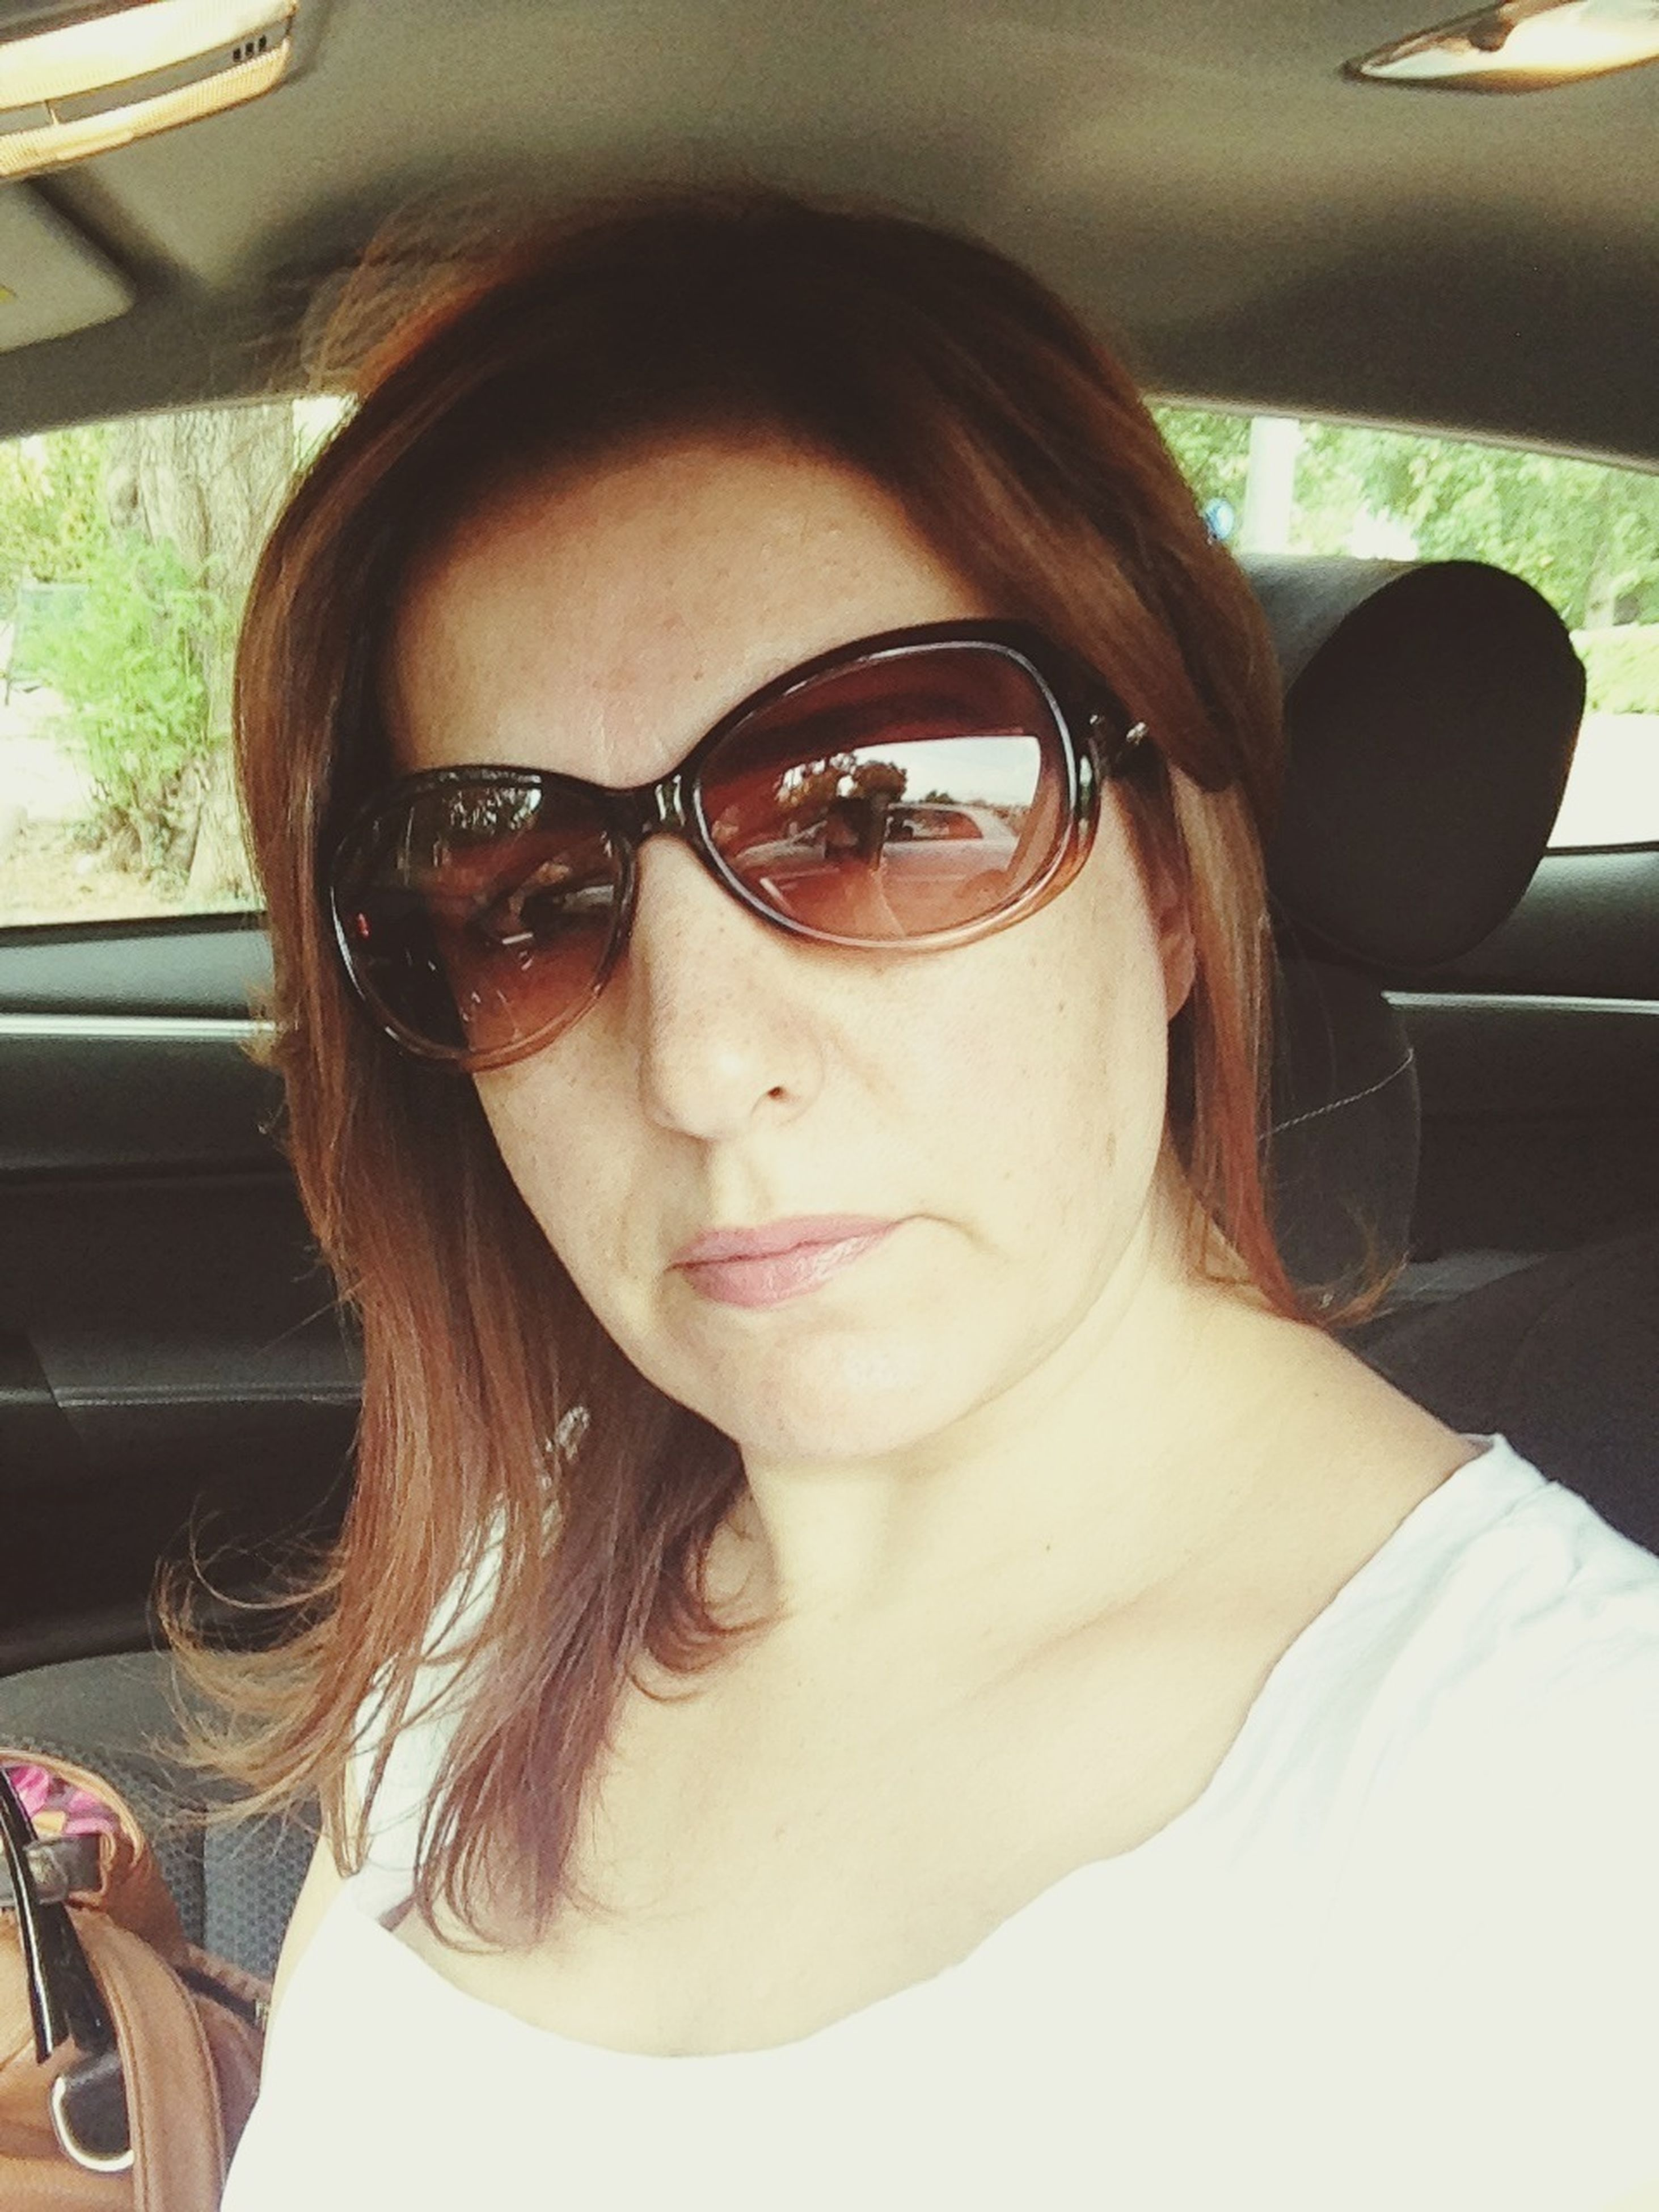 portrait, looking at camera, young adult, person, sunglasses, front view, headshot, young women, lifestyles, smiling, car, leisure activity, transportation, vehicle interior, casual clothing, sitting, close-up